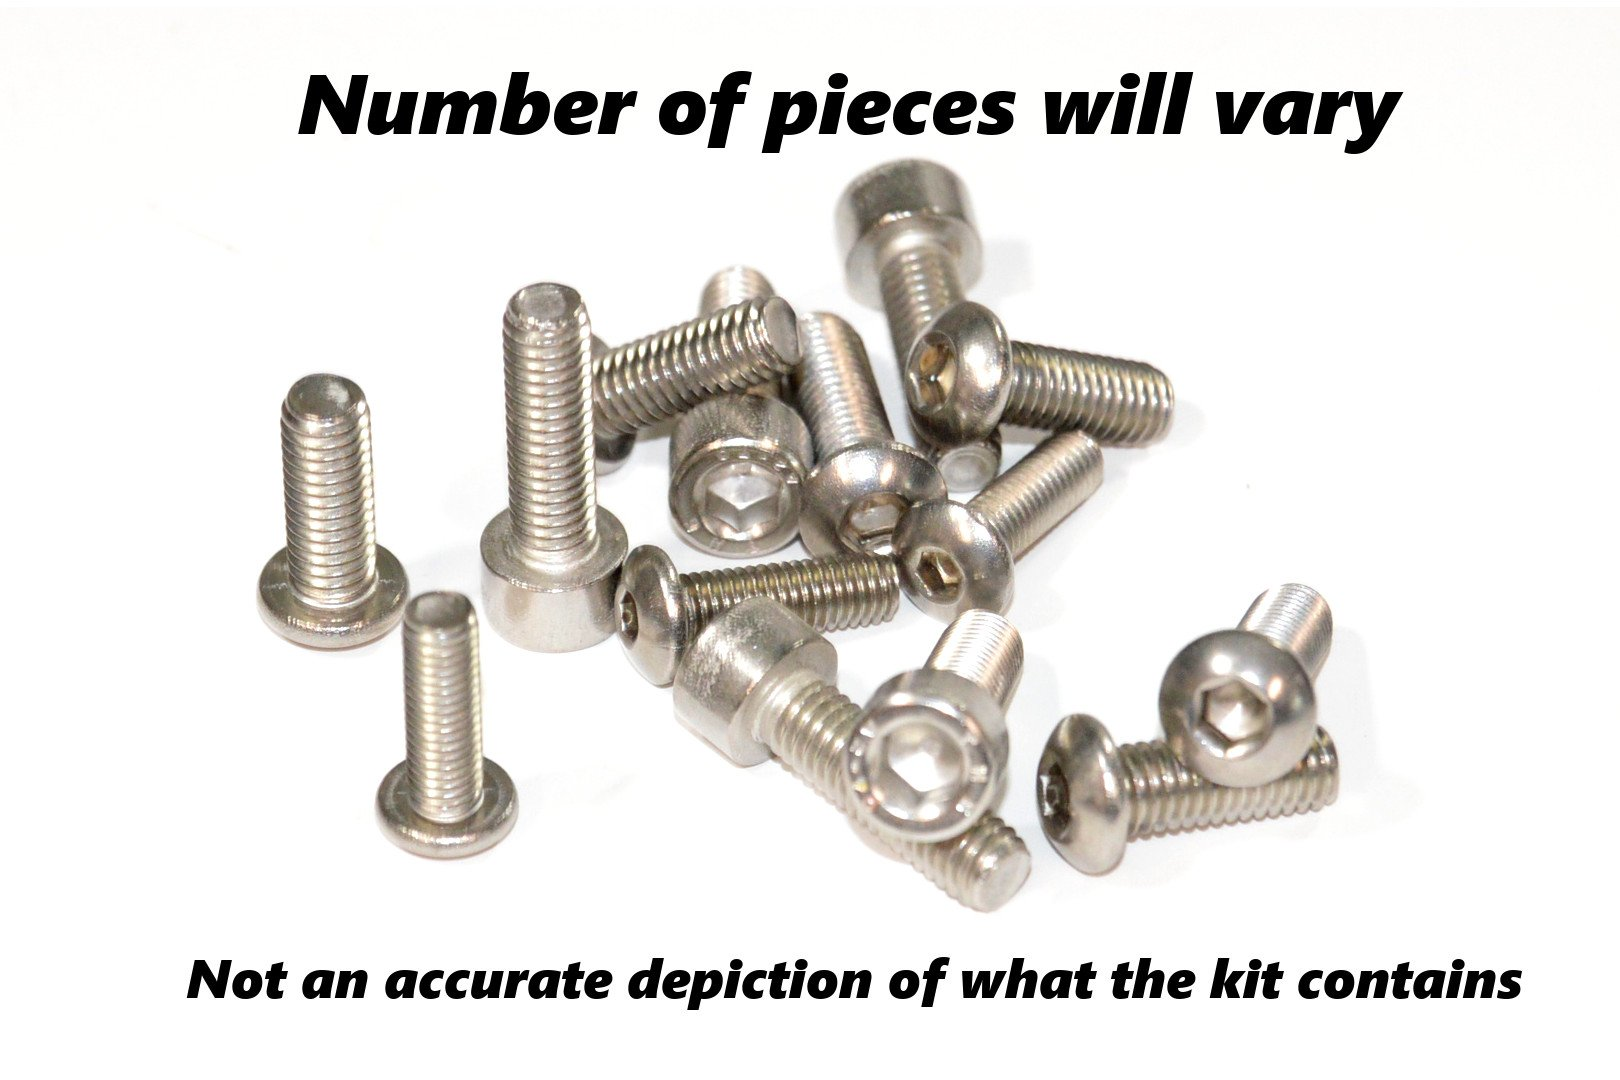 Complete Motorcycle Fairing Bolt Kit Yamaha 2004 - 2006 YZF-R1 Body Screws, Fasteners, and Hardware by Bike Boltz (Image #5)